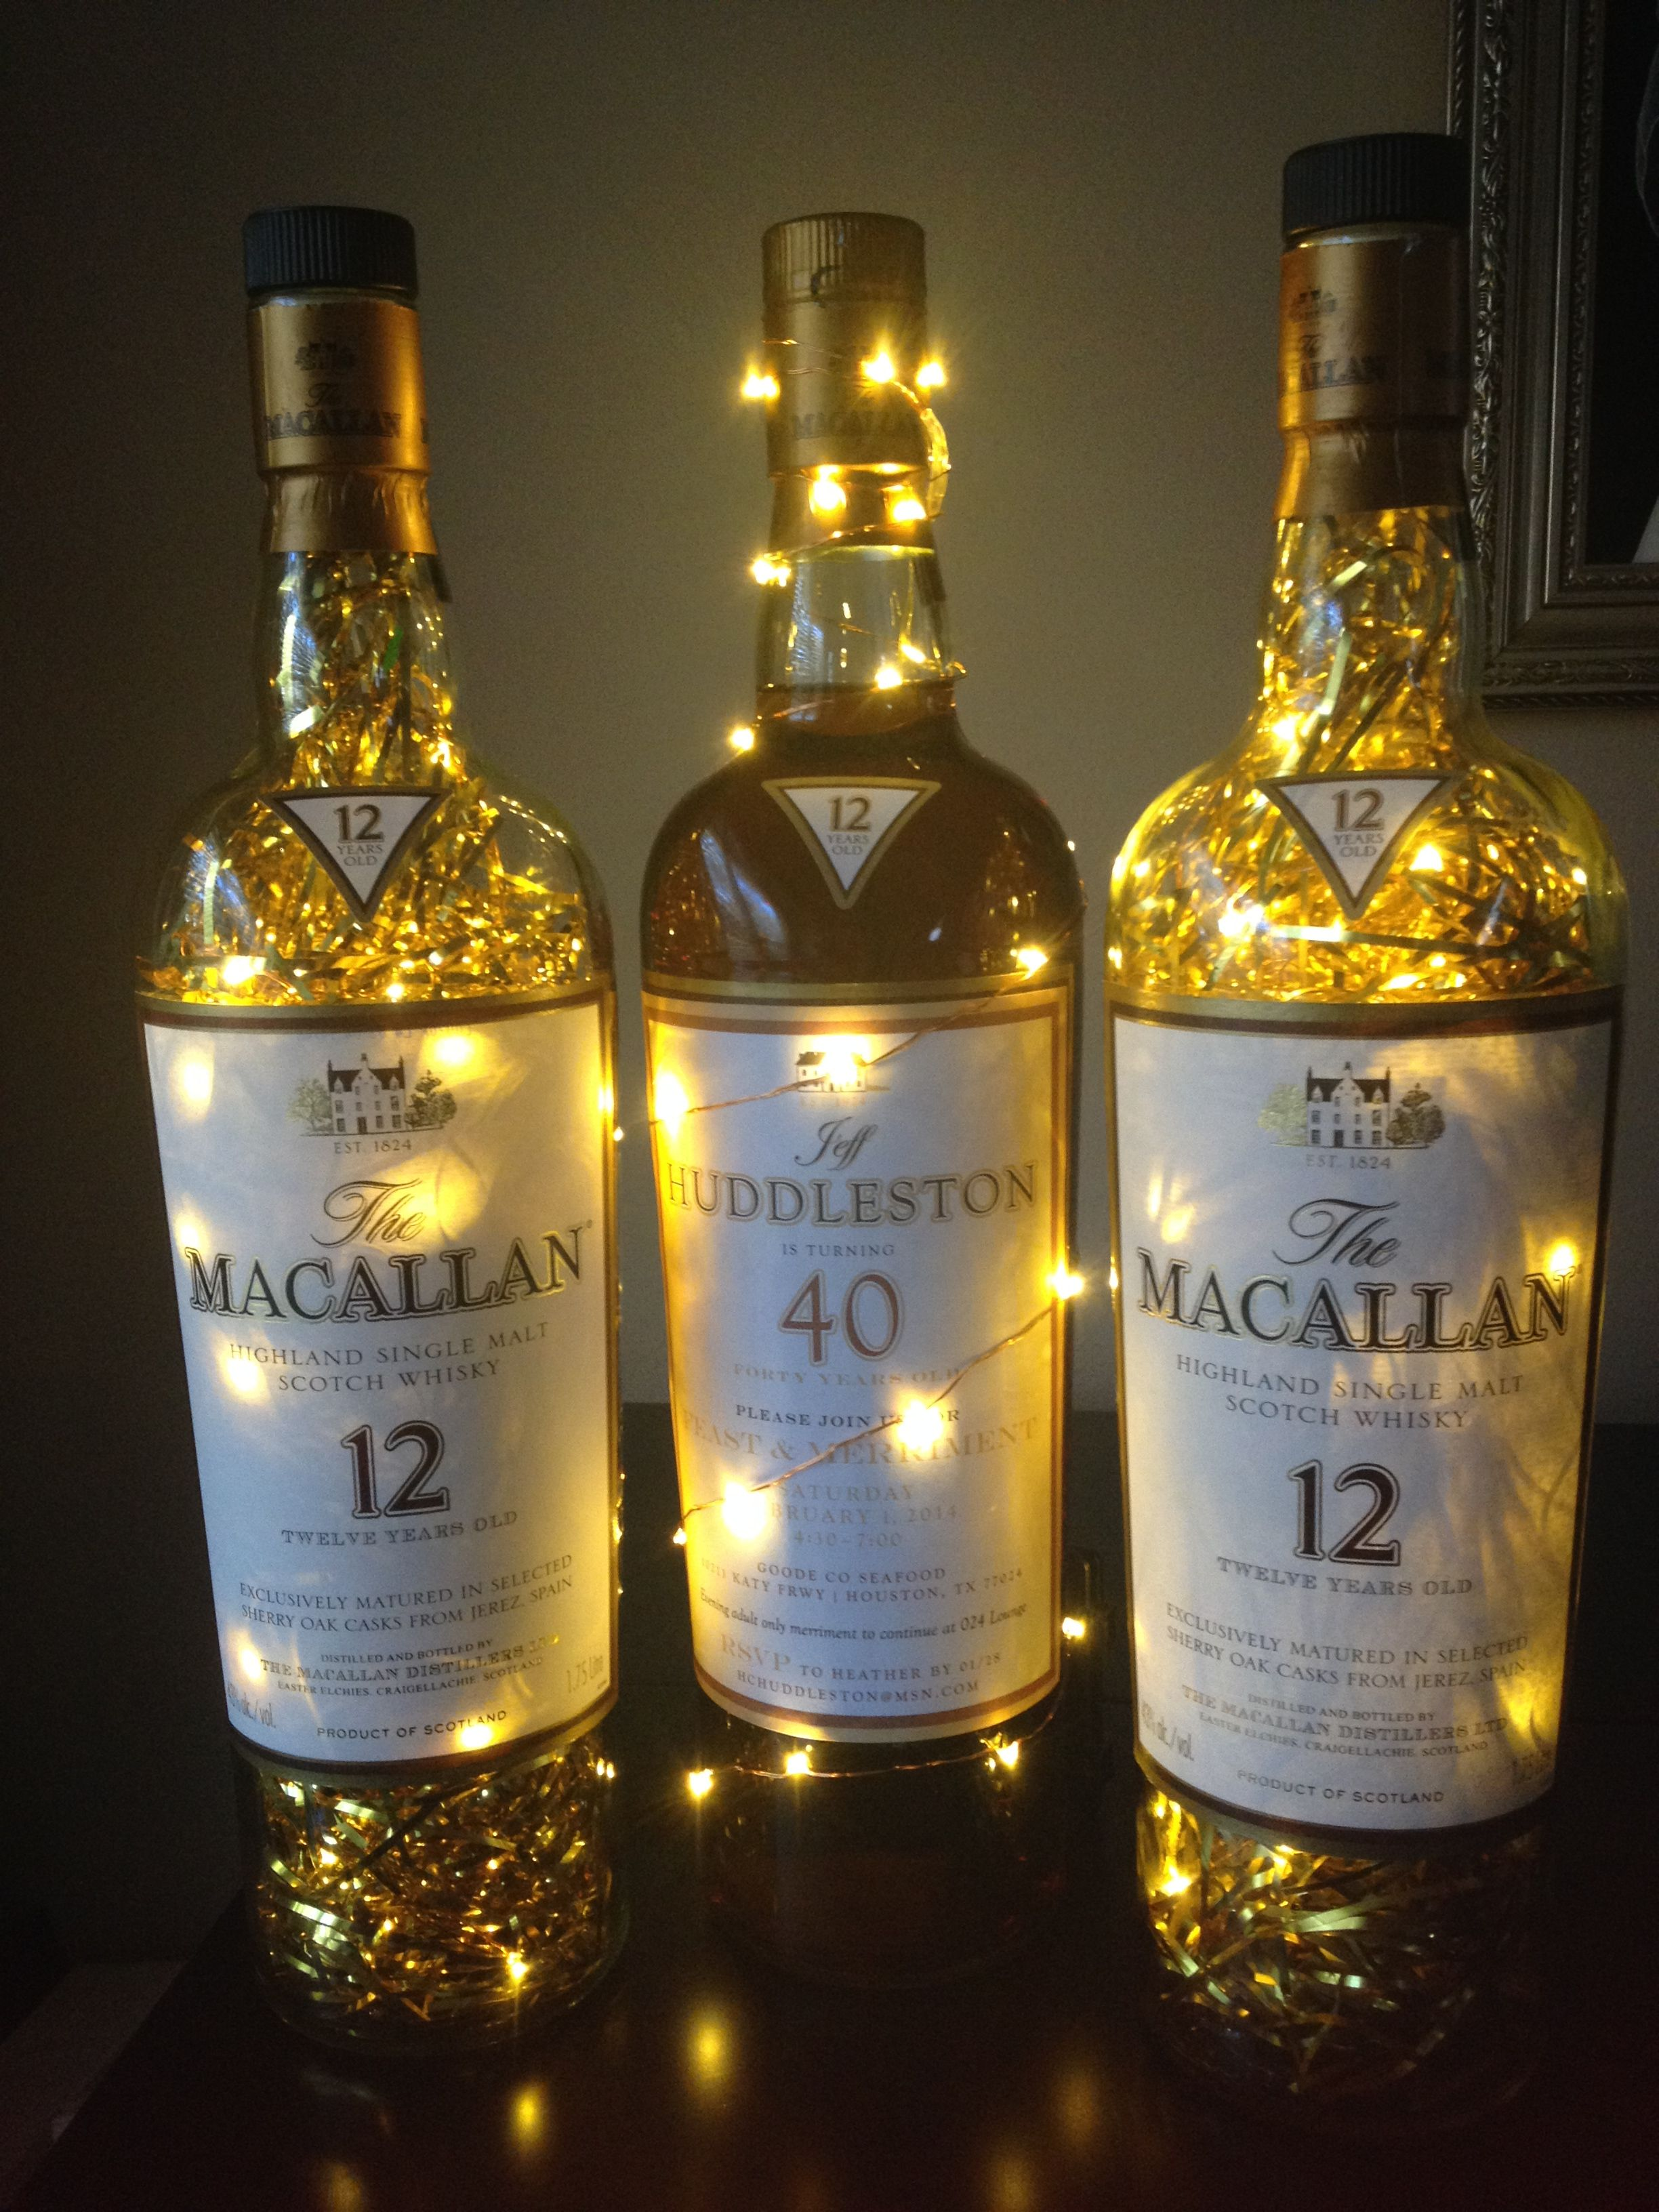 Macallan Scotch Whiskey Bottle Centerpieces Party Decorations 40th Birthday Large Empty 175 L Bottles Filled With Fairy Lights And Gold